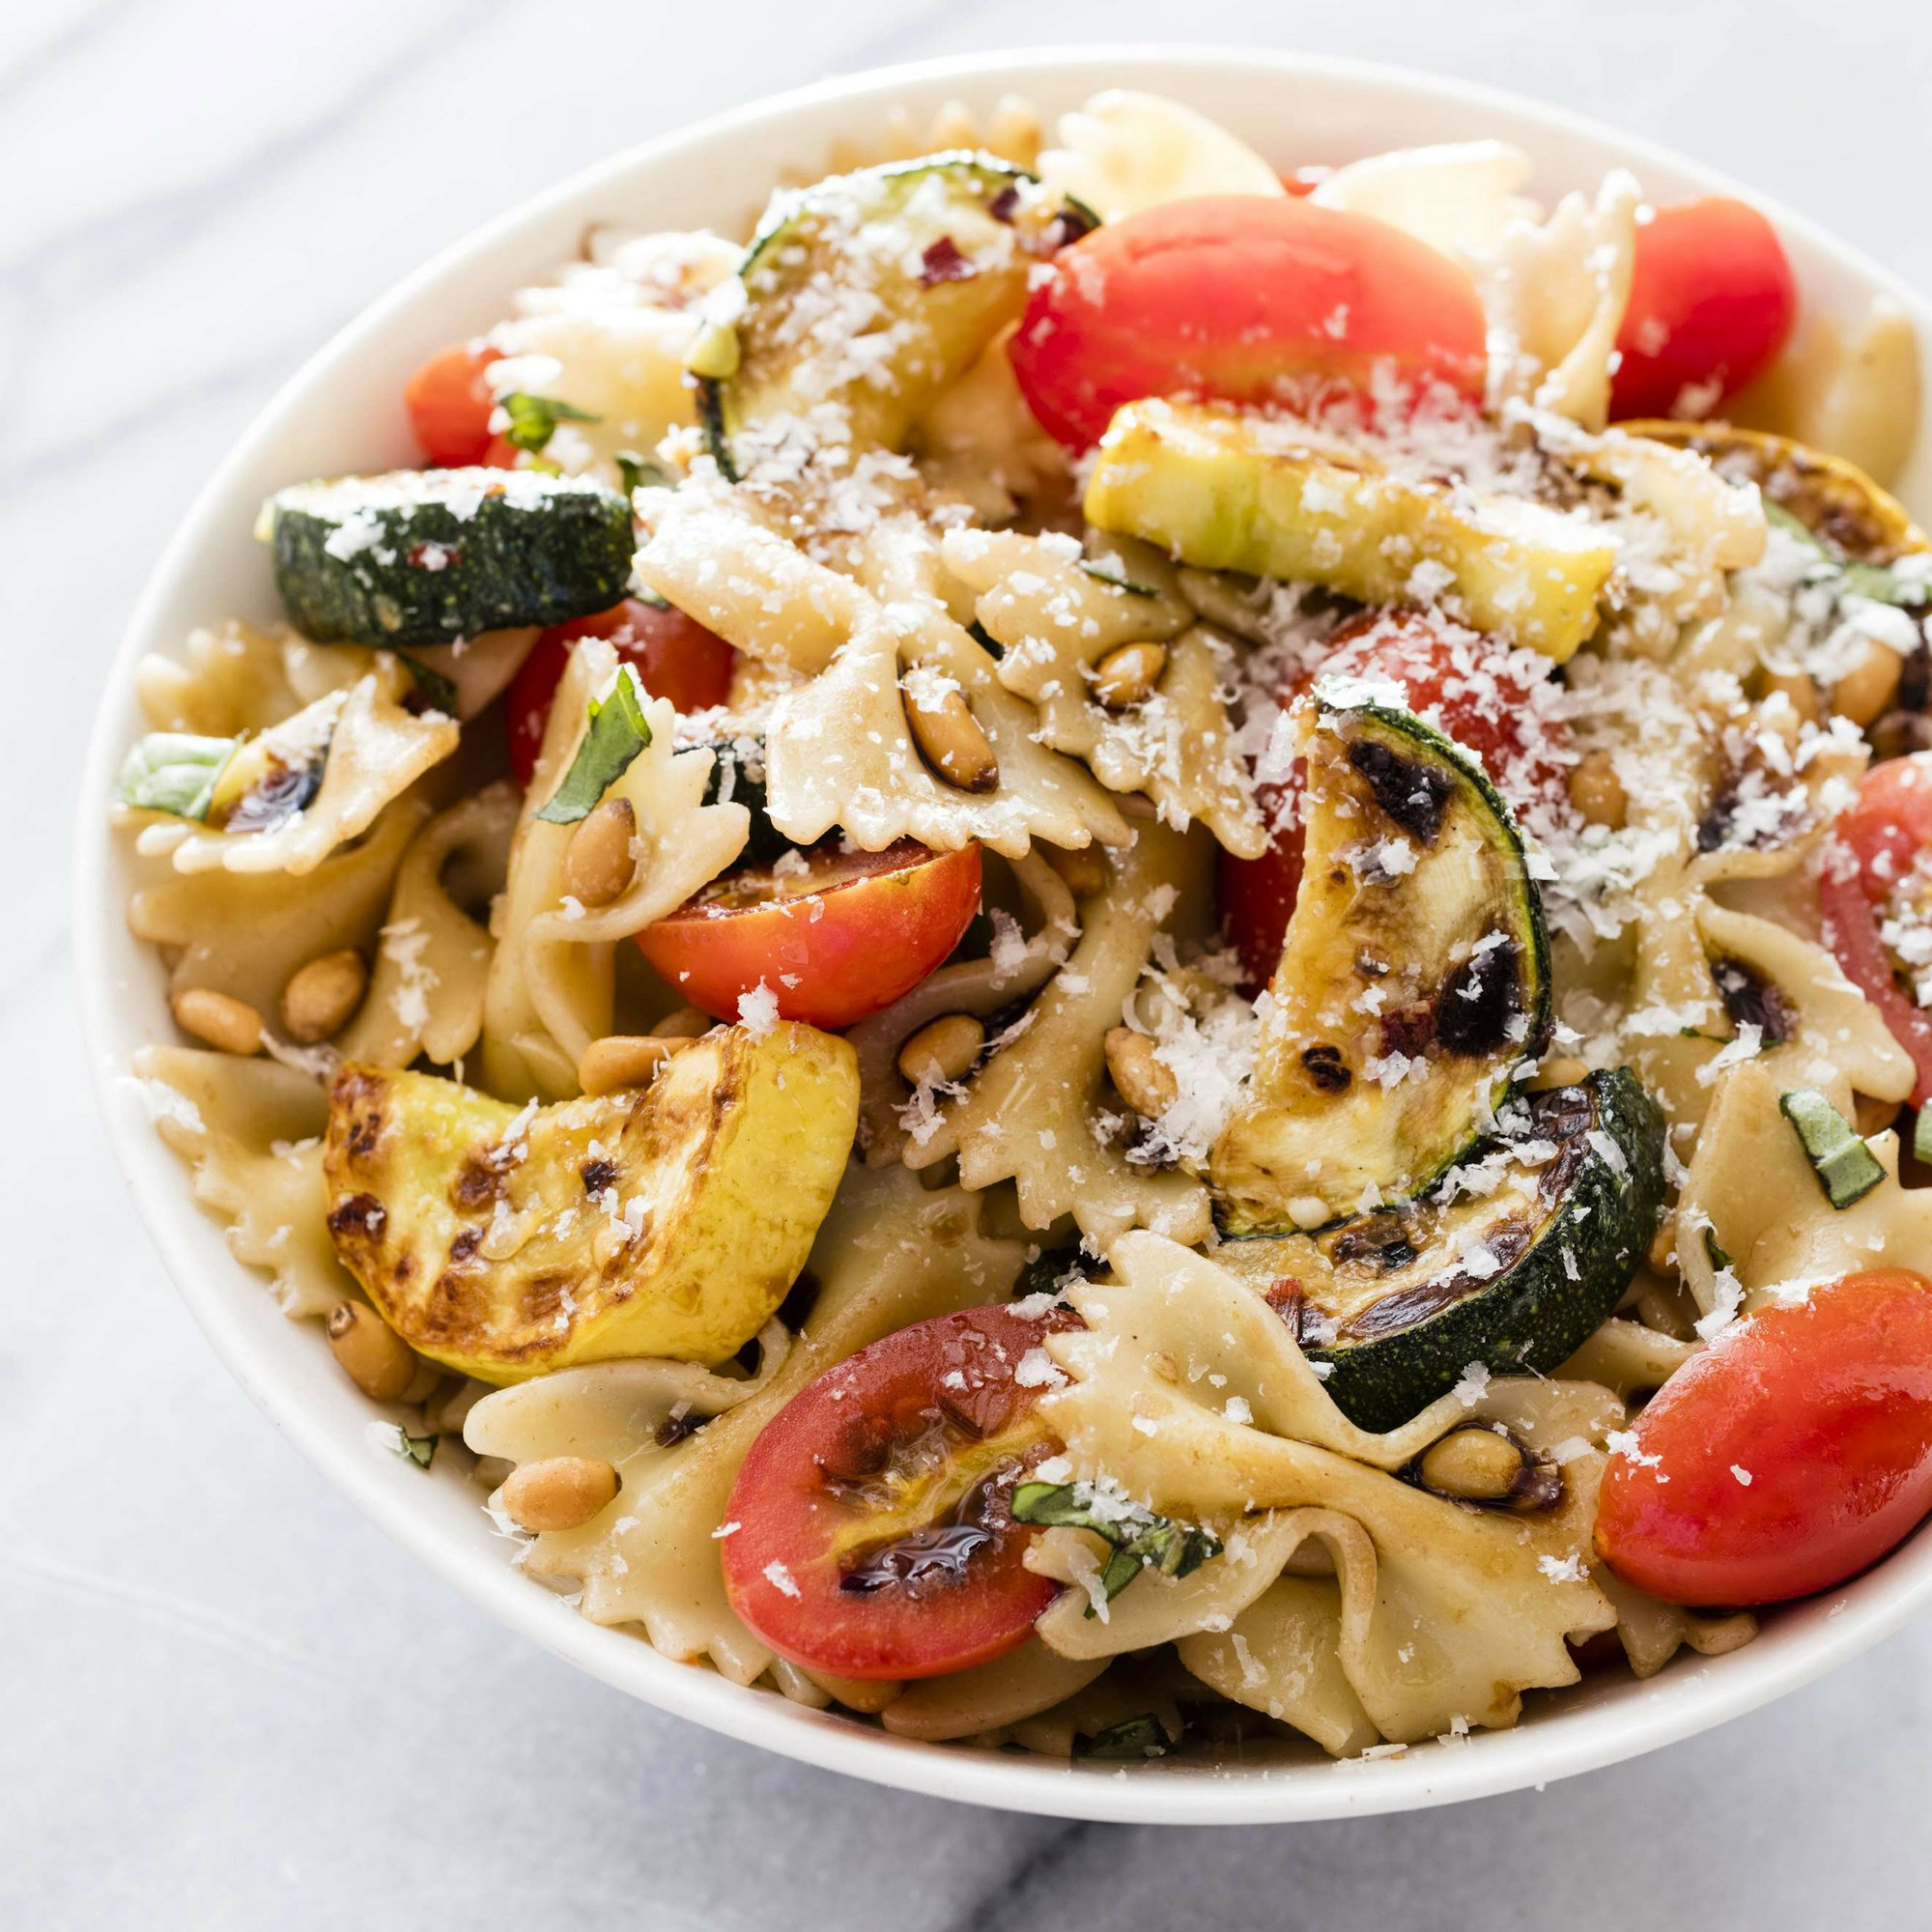 Zucchini or summer squash makes for a colorful pasta dish